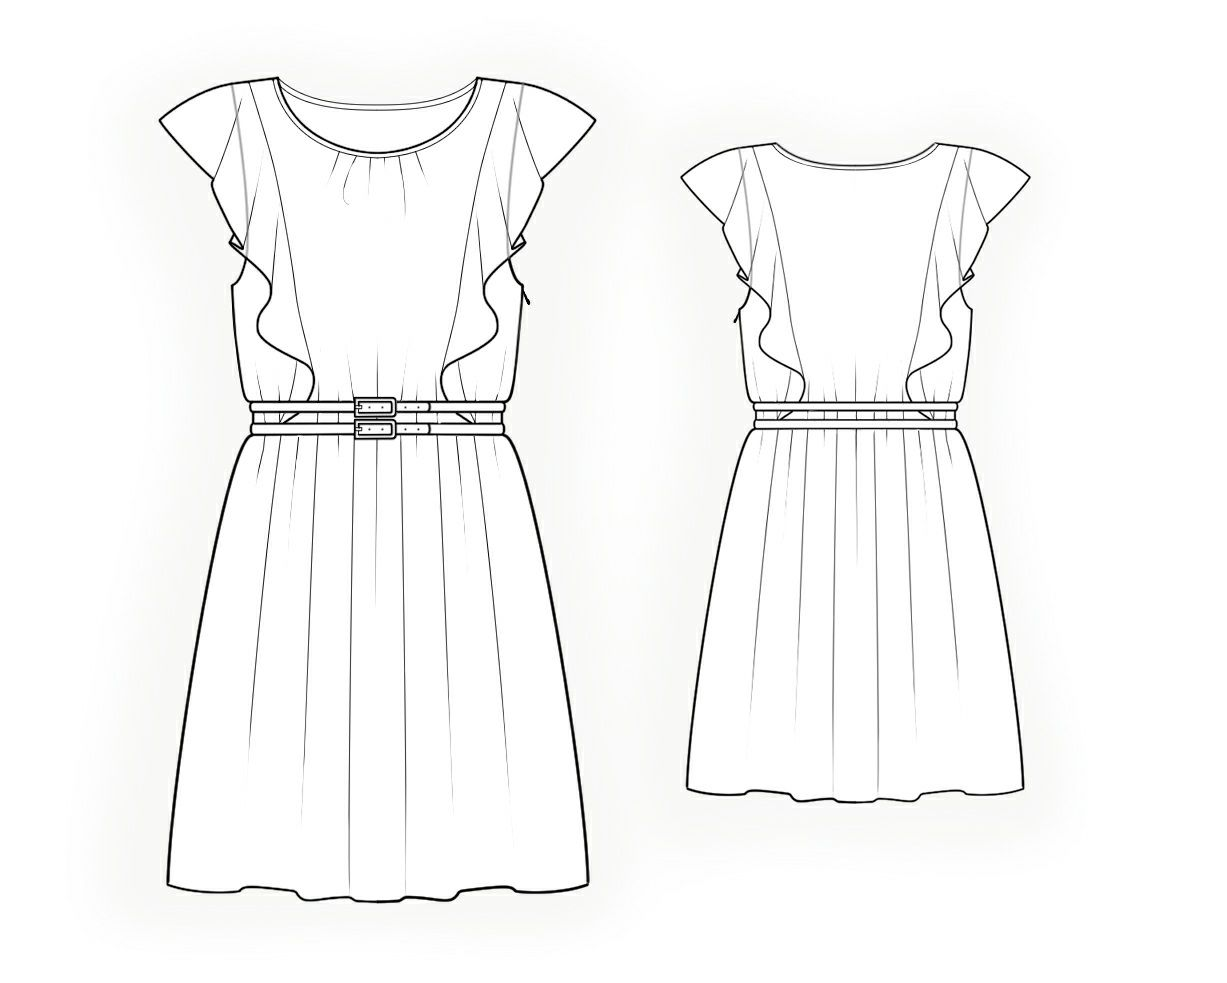 Dress With Flounces - Sewing Pattern #4279 Made-to-measure sewing ...